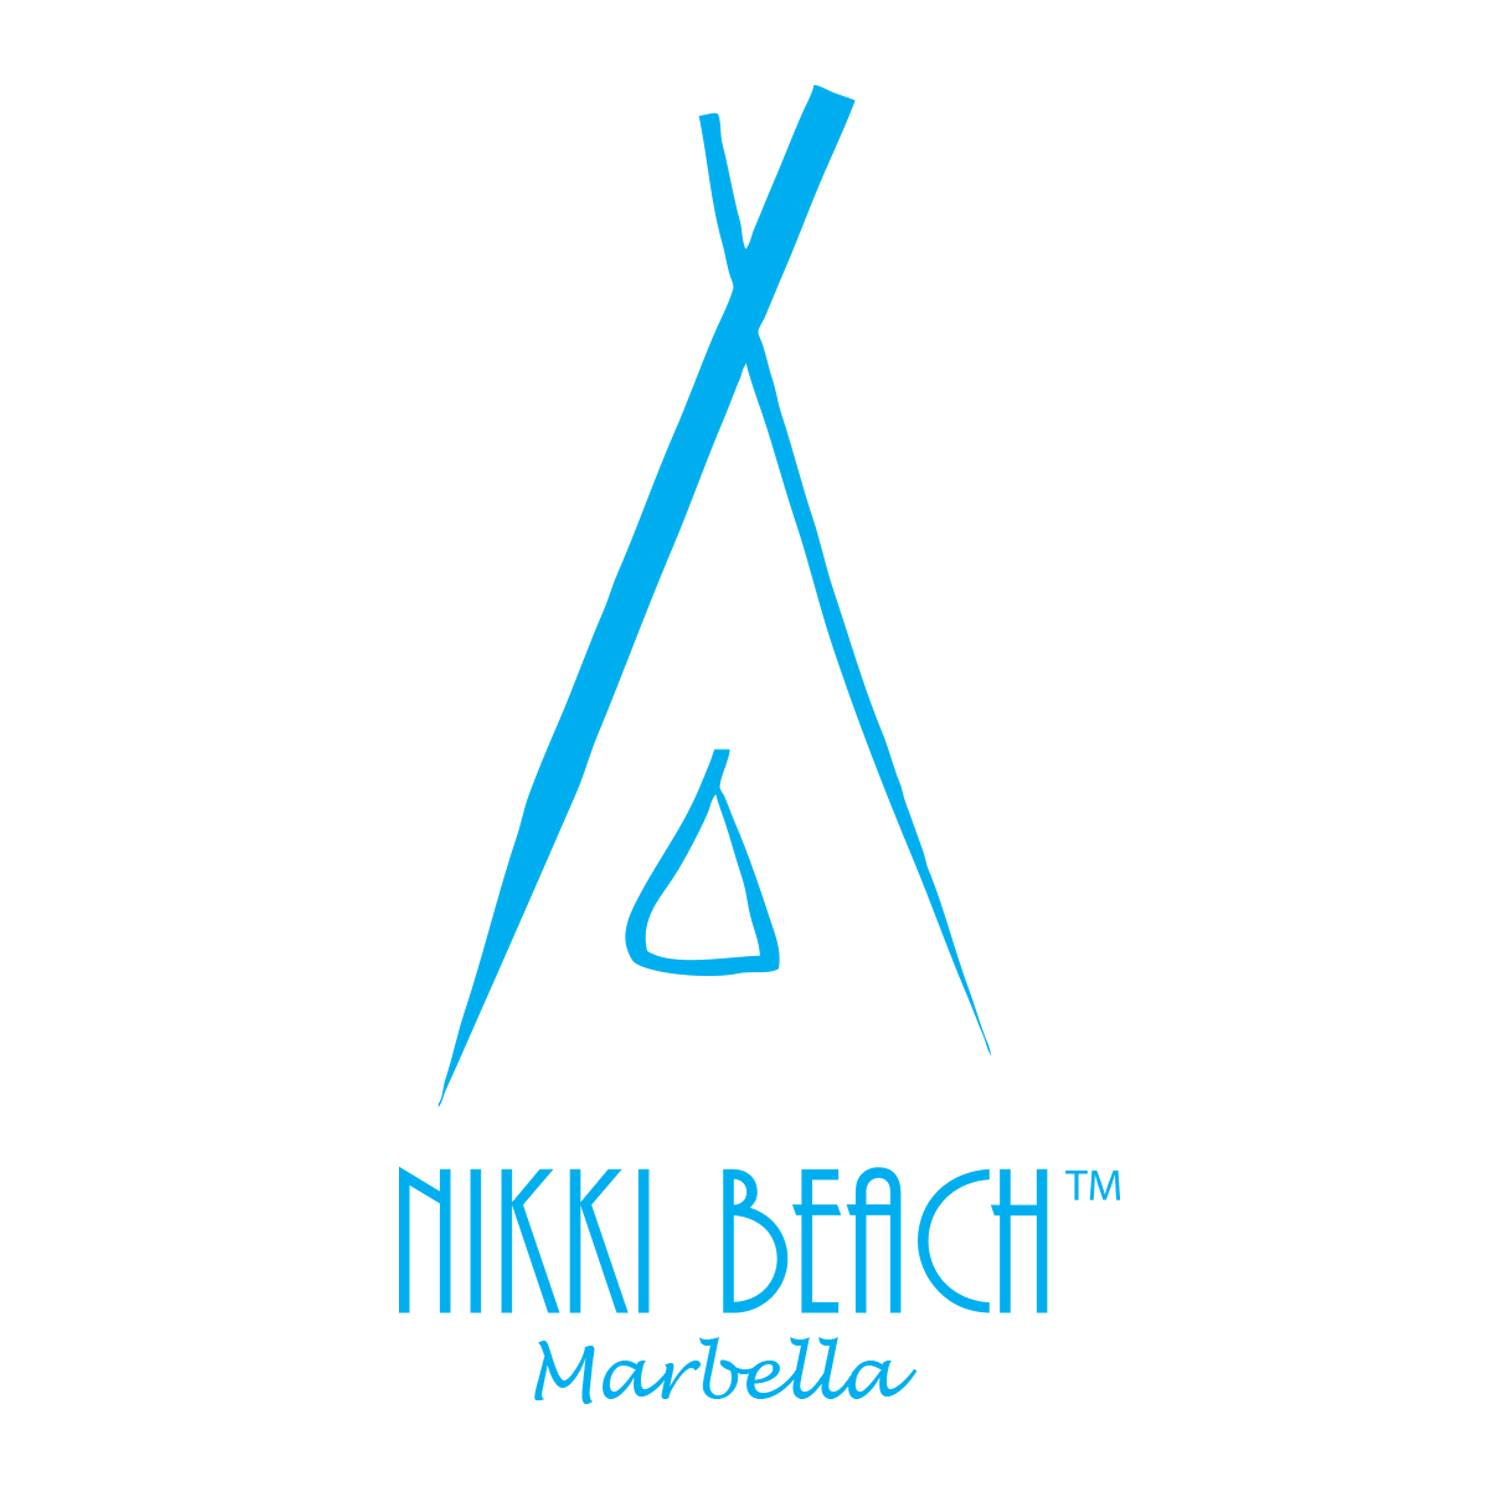 NIKKI Beach Marbella Events 2020